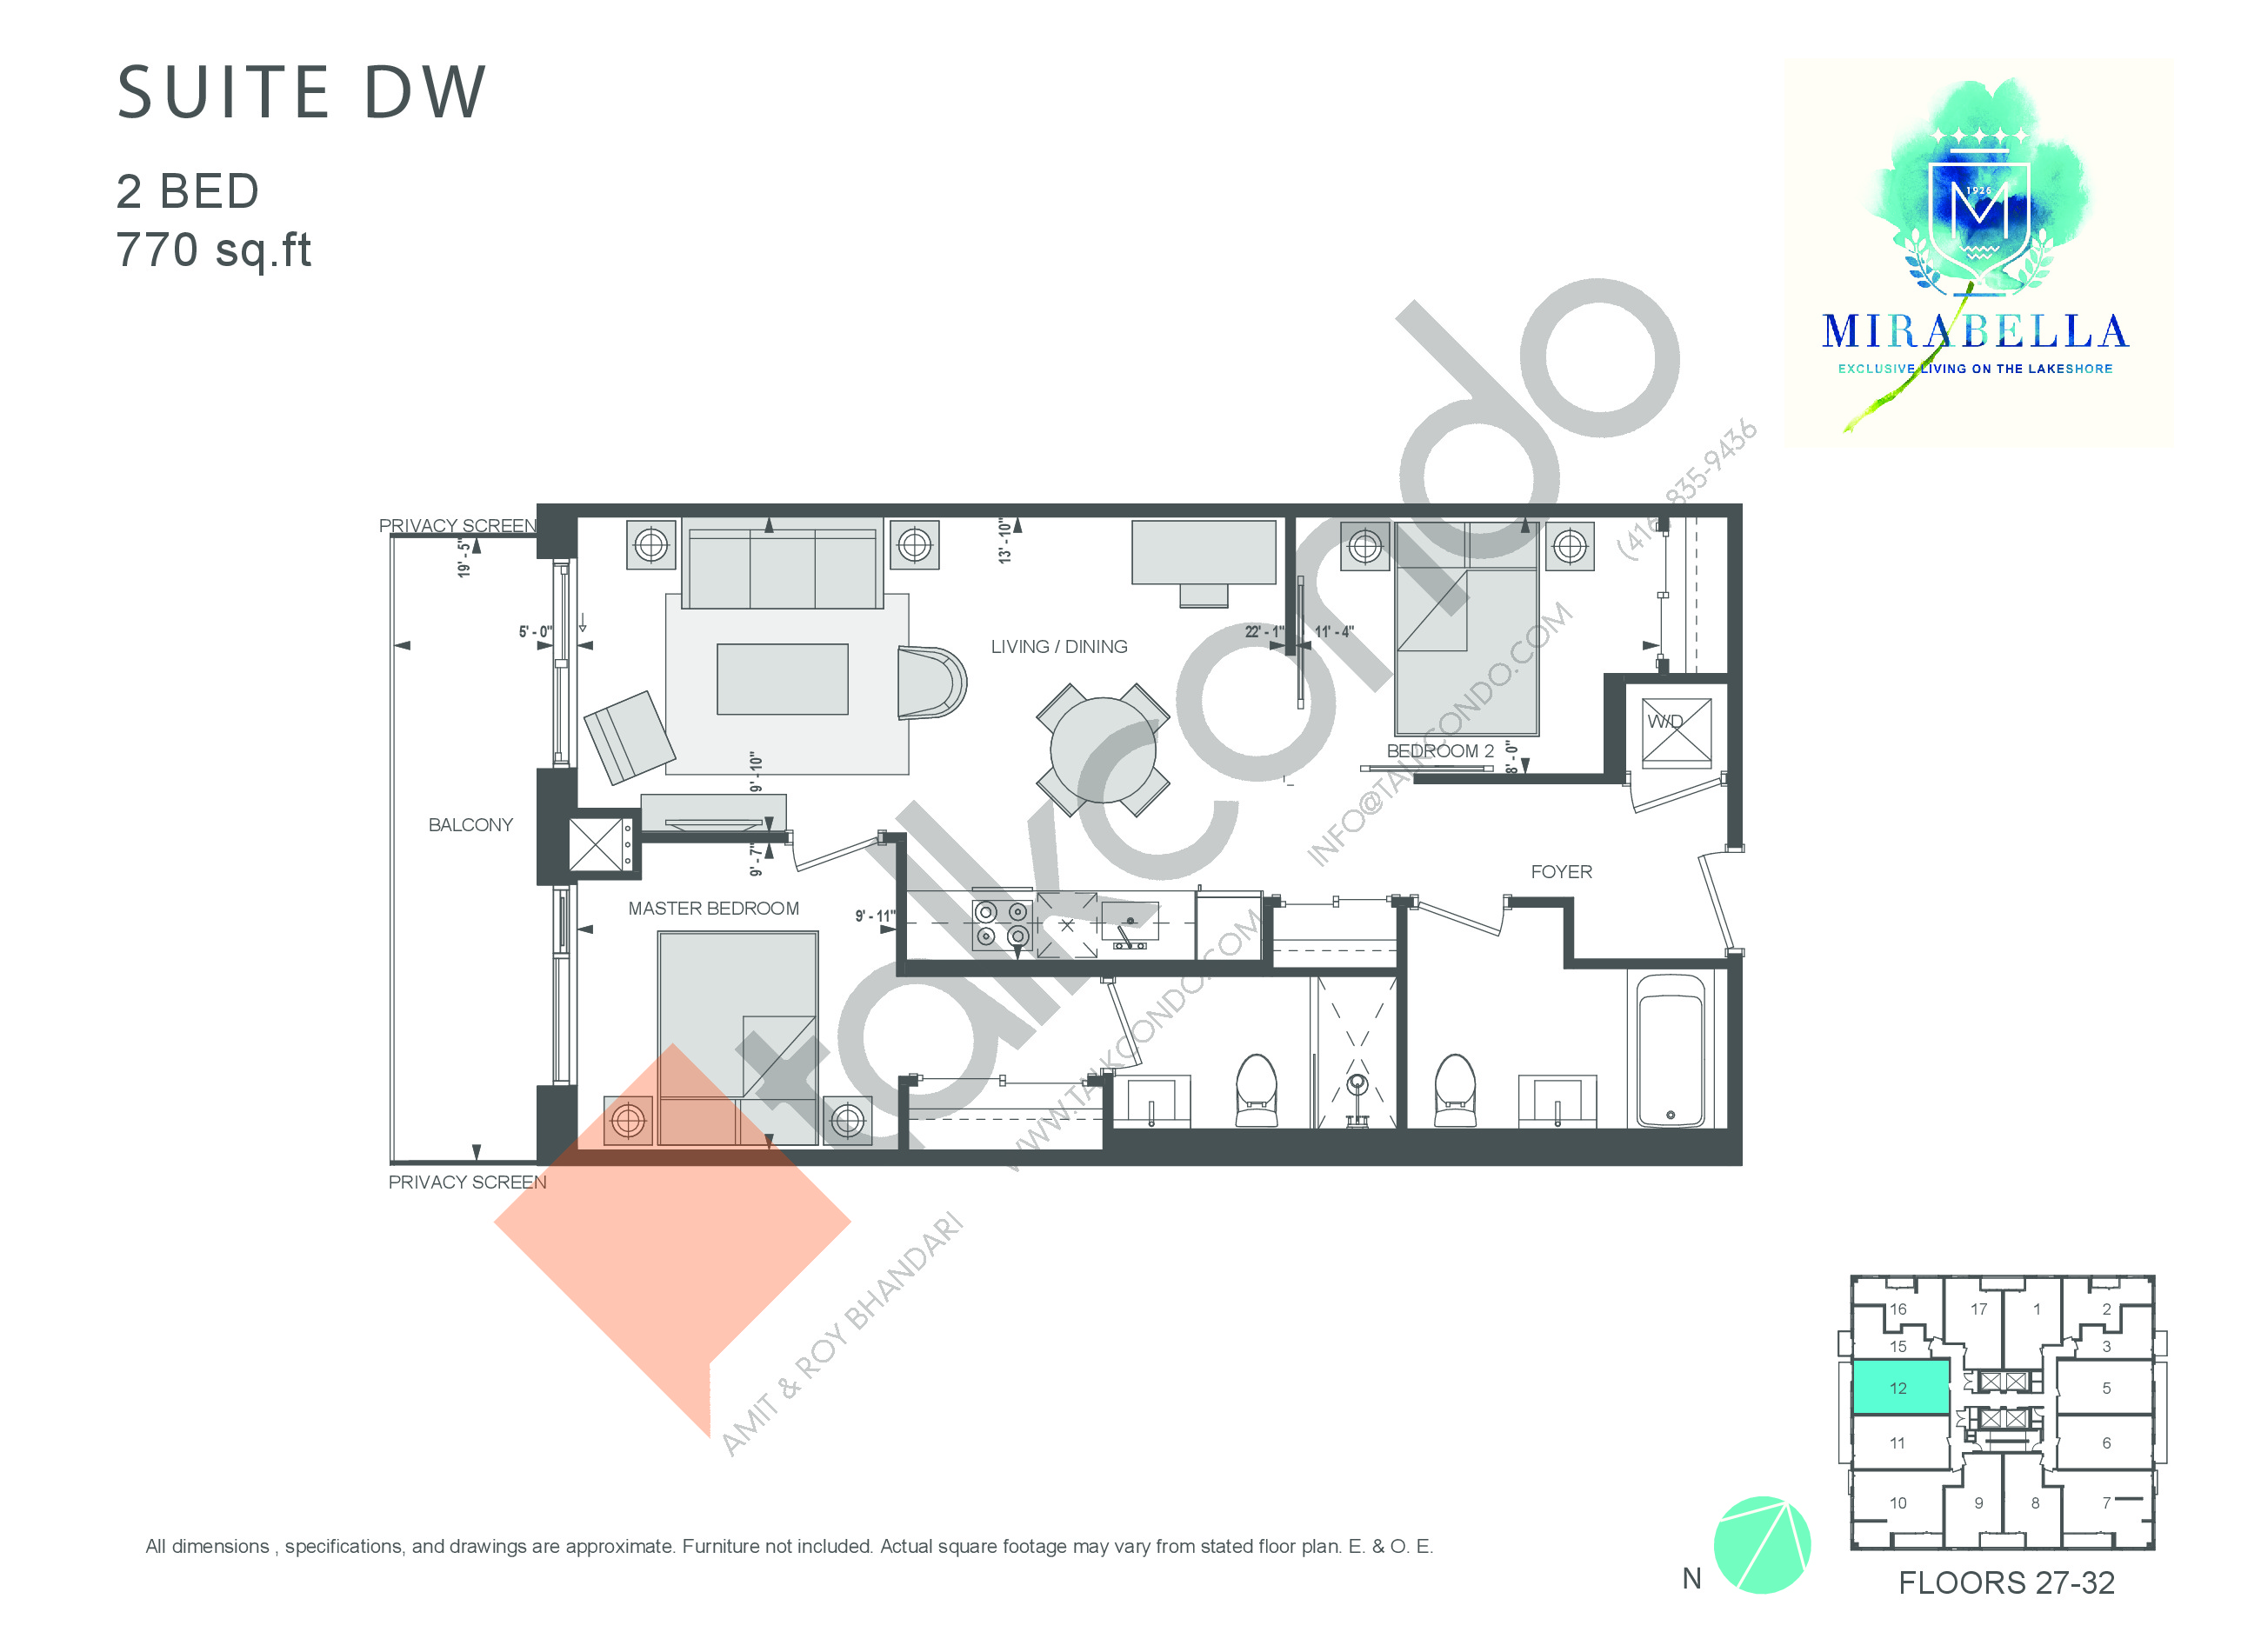 Suite DW Floor Plan at Mirabella Luxury Condos East Tower - 770 sq.ft